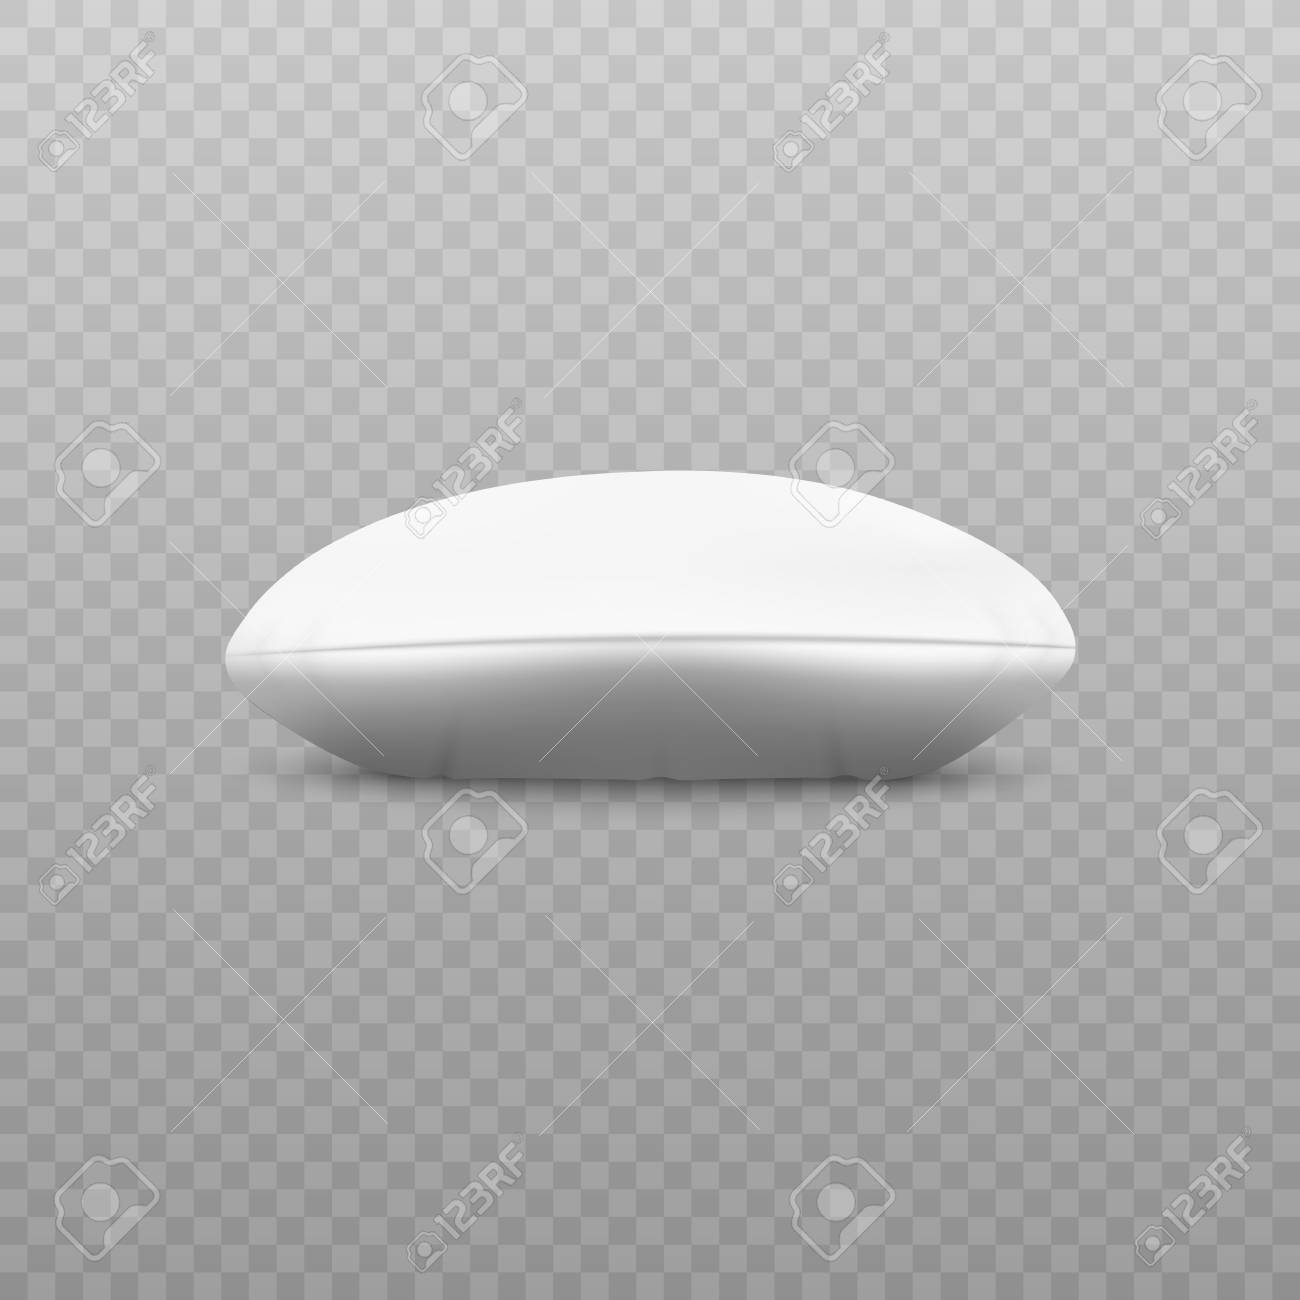 white round pillow side view lying on surface realistic 3d